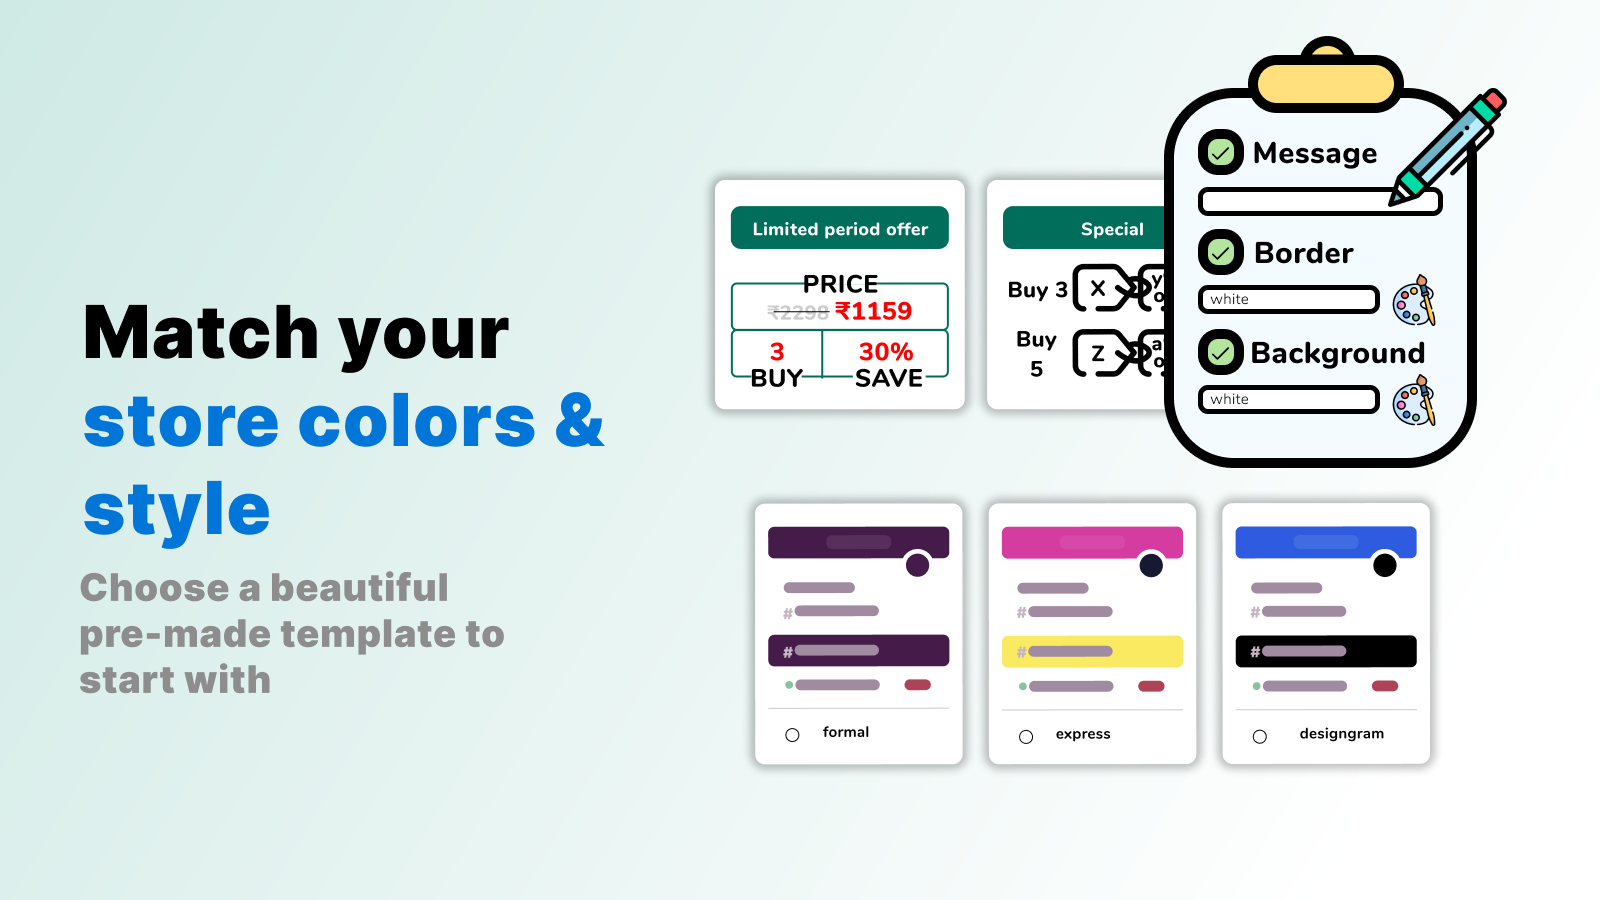 Match your store colors and style with quantity discounts